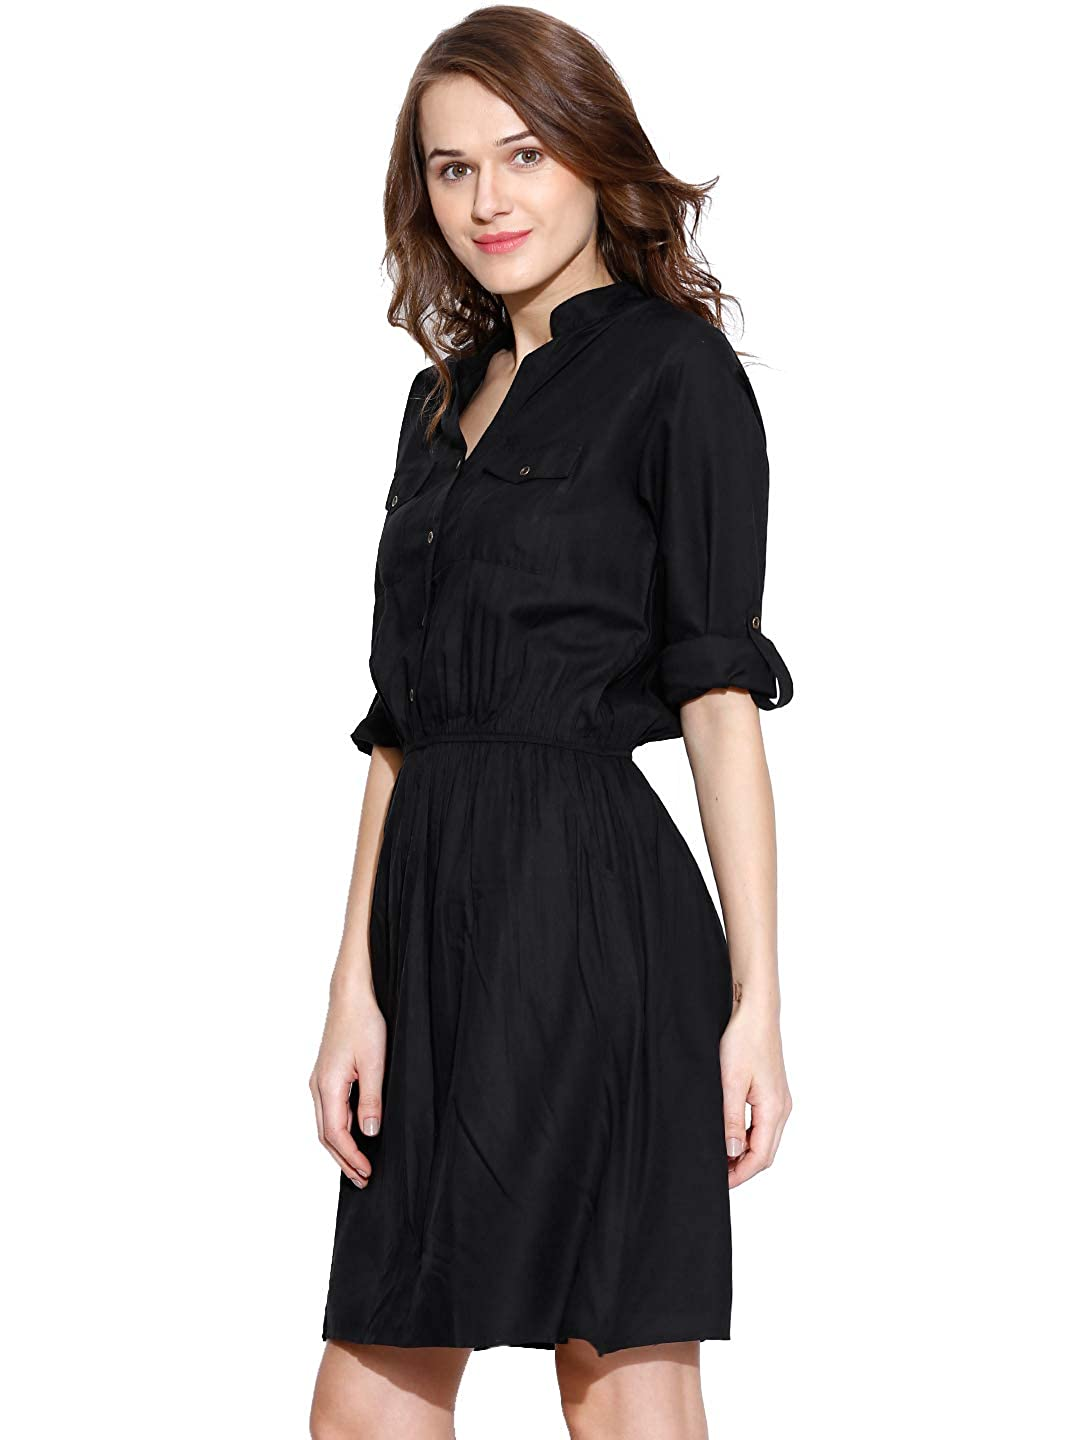 c7fcfeaf12 Amayra Women s Rayon A-Line Dress(Black)  Amazon.in  Clothing   Accessories